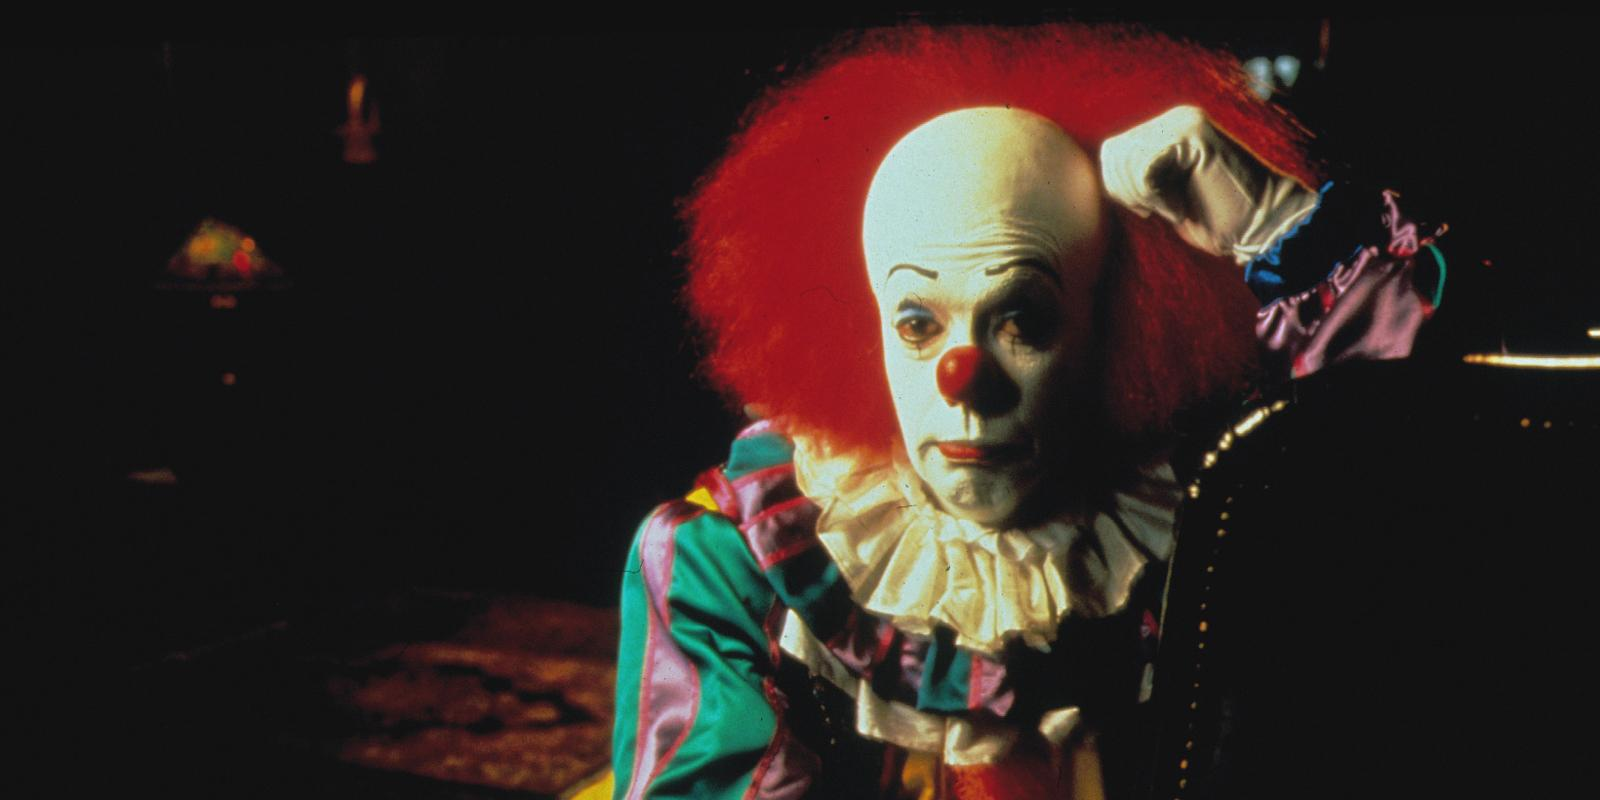 stephen king 39 s 39 it 39 to be made into two movies by cary fukunaga. Black Bedroom Furniture Sets. Home Design Ideas